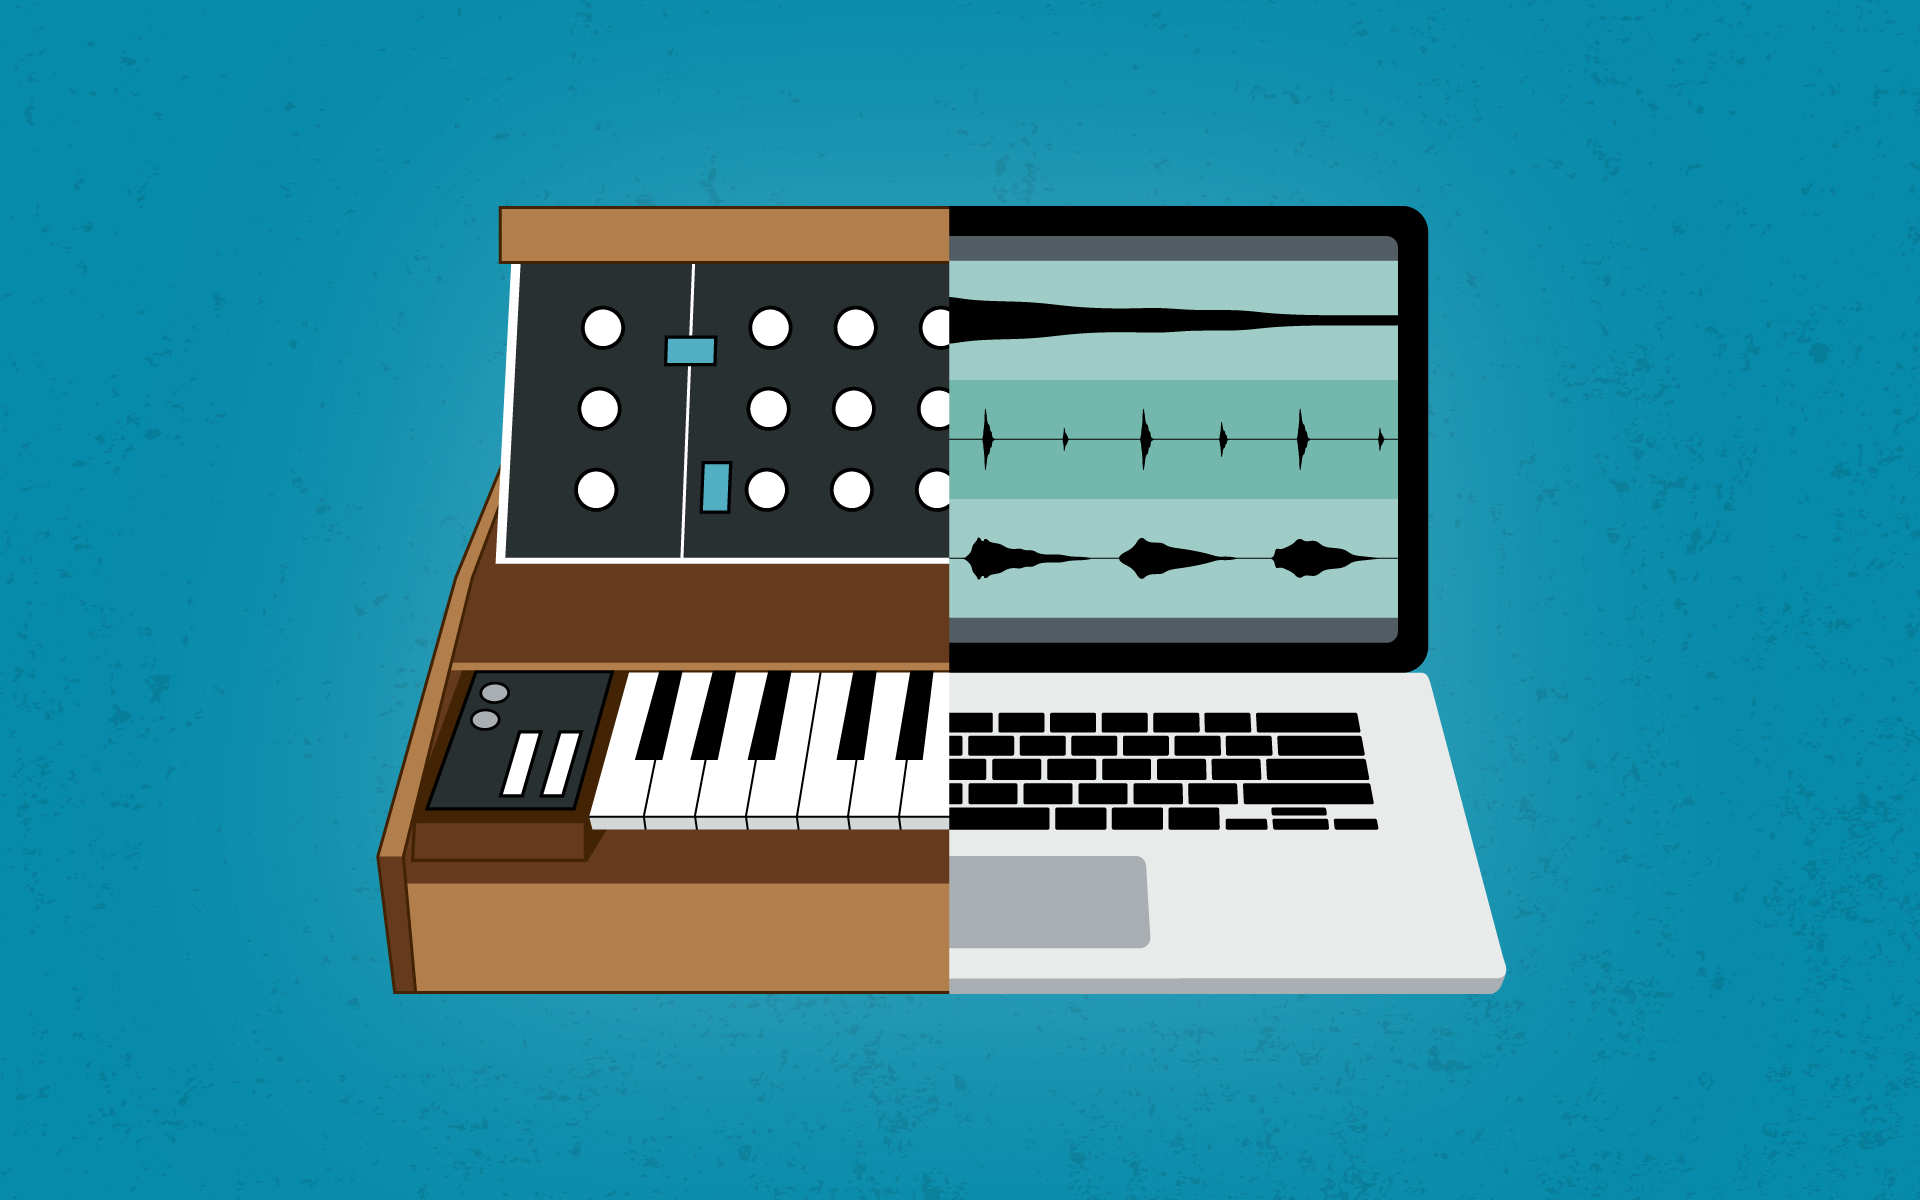 An illustrationof a vintage synth next to a laptop displaying a DAW program.